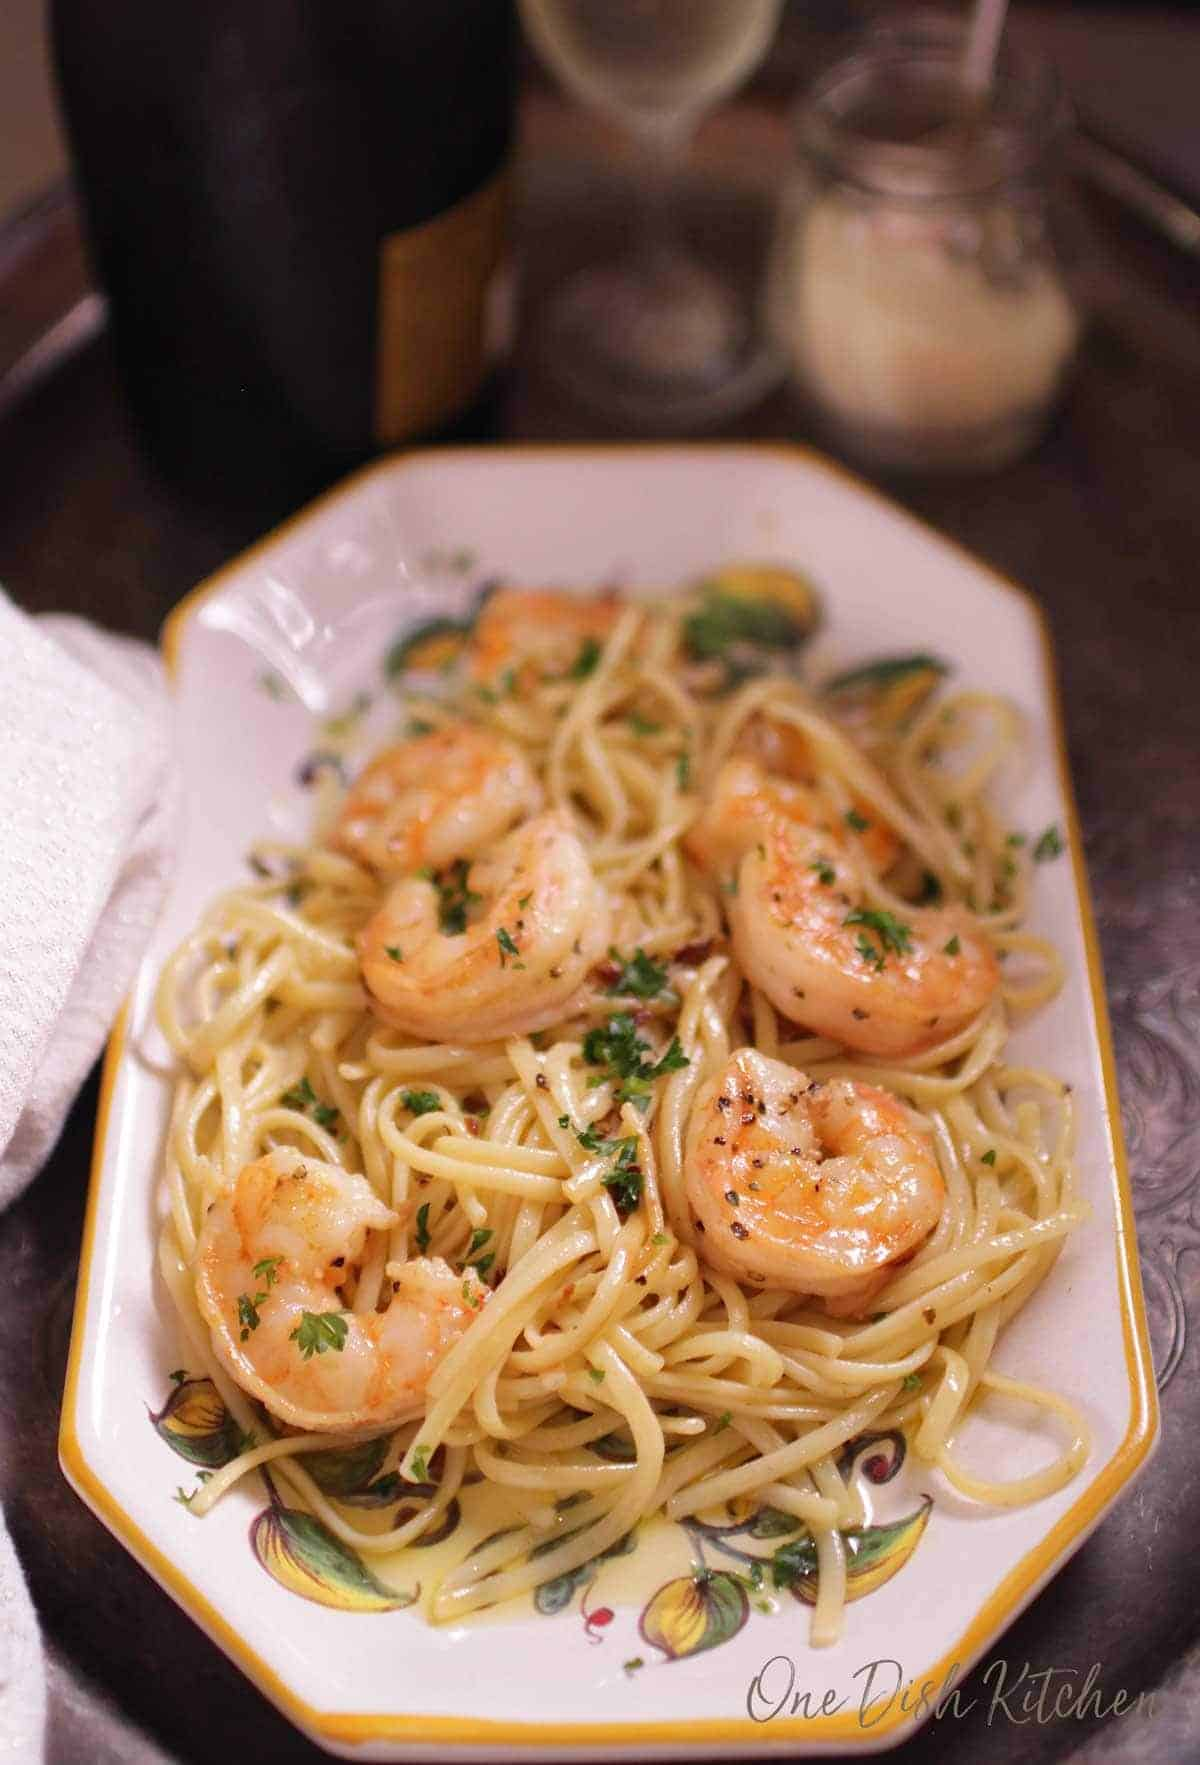 An overhead view of a plate of spaghetti with shrimp on a tray next to a small jar of parmesan cheese and a glass of champagne.